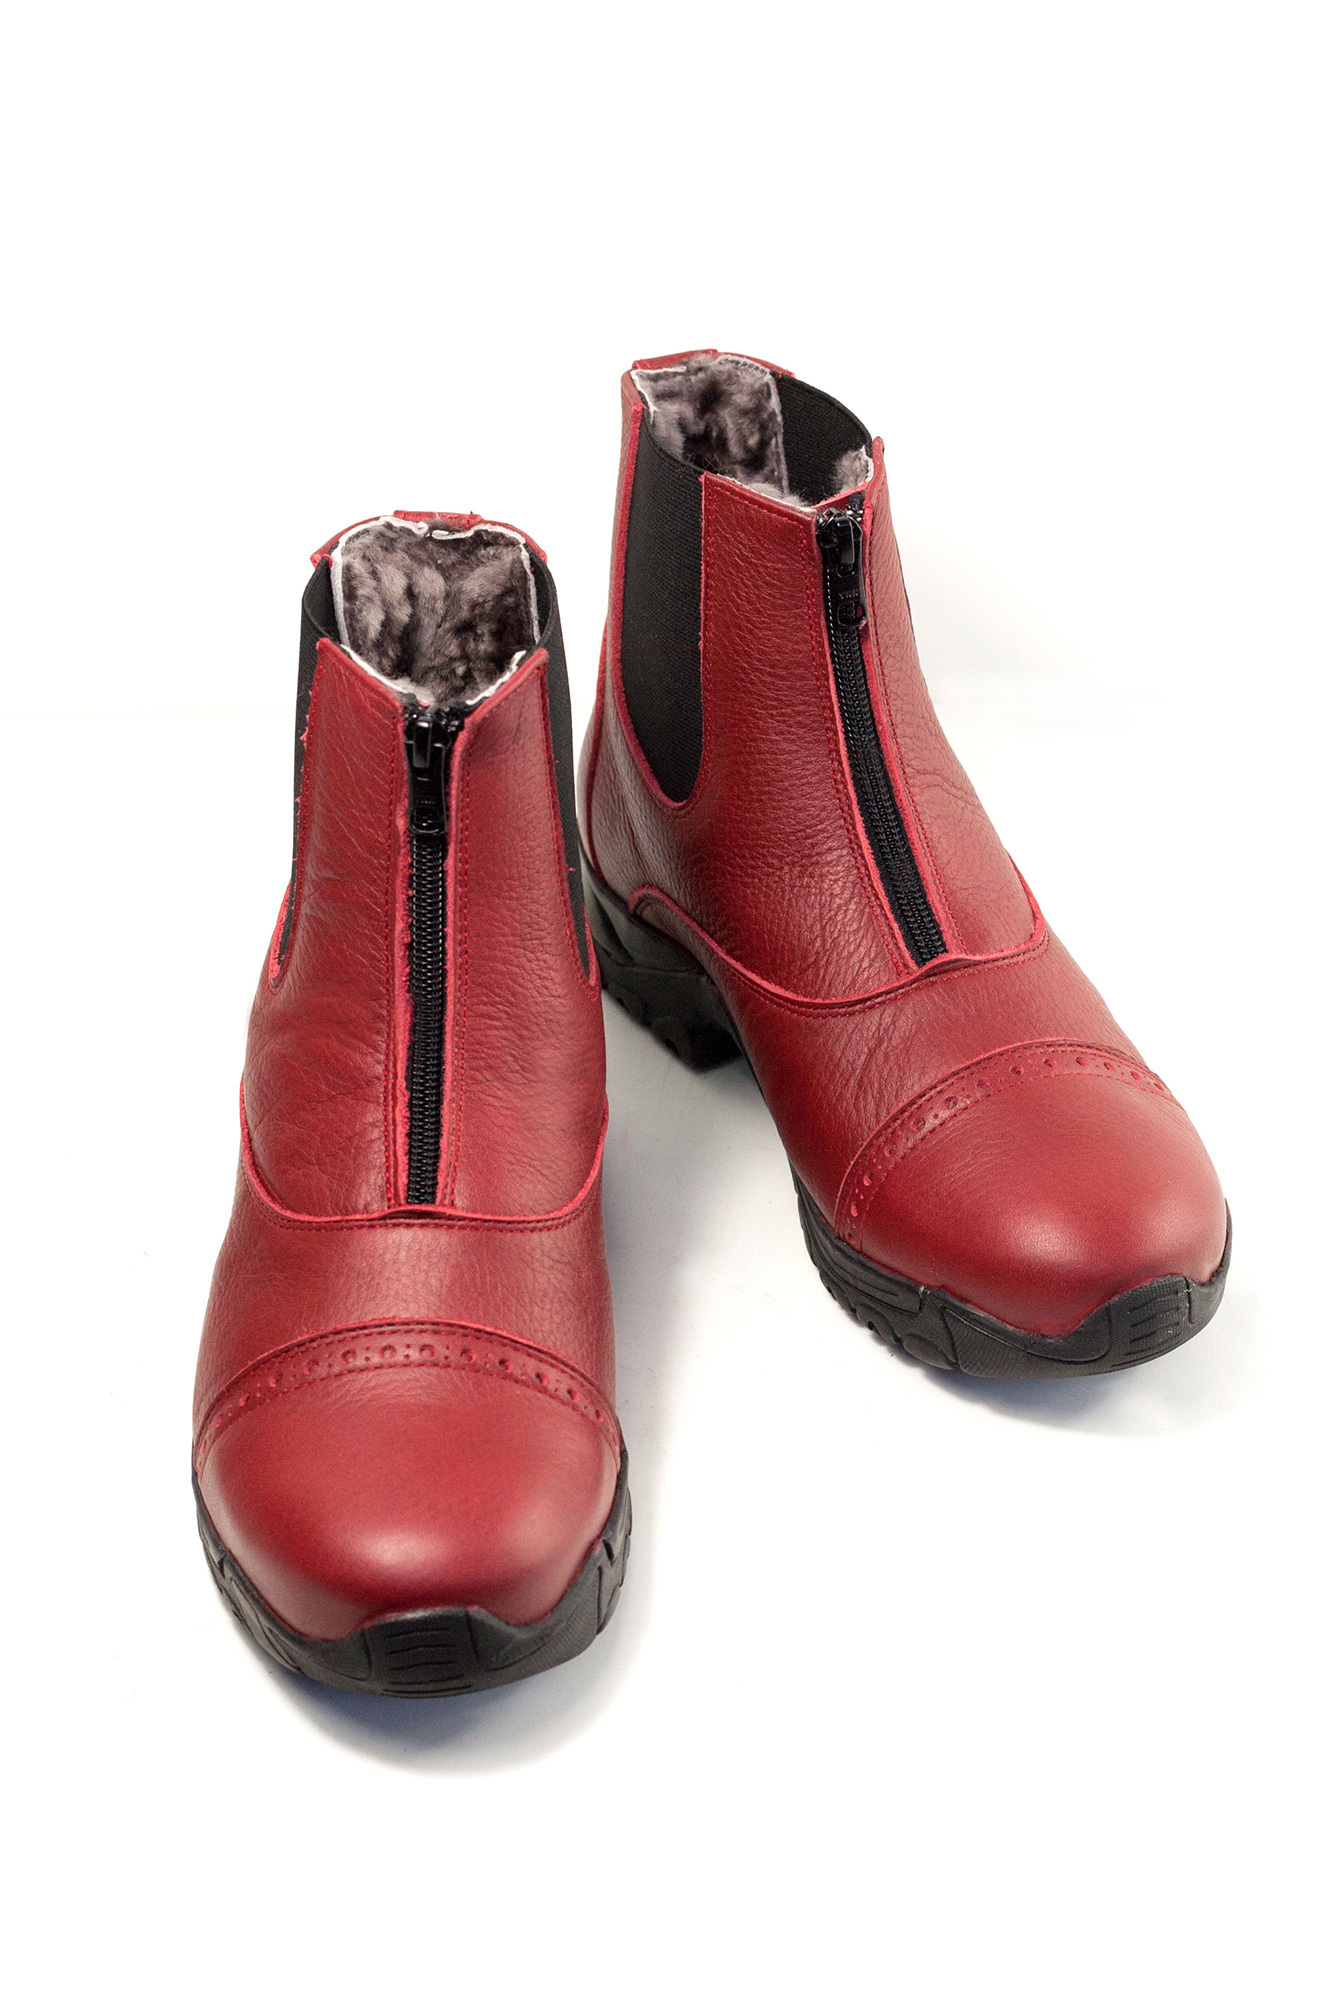 Hot Bob Reitstiefelette Echtfell red rot fur lined